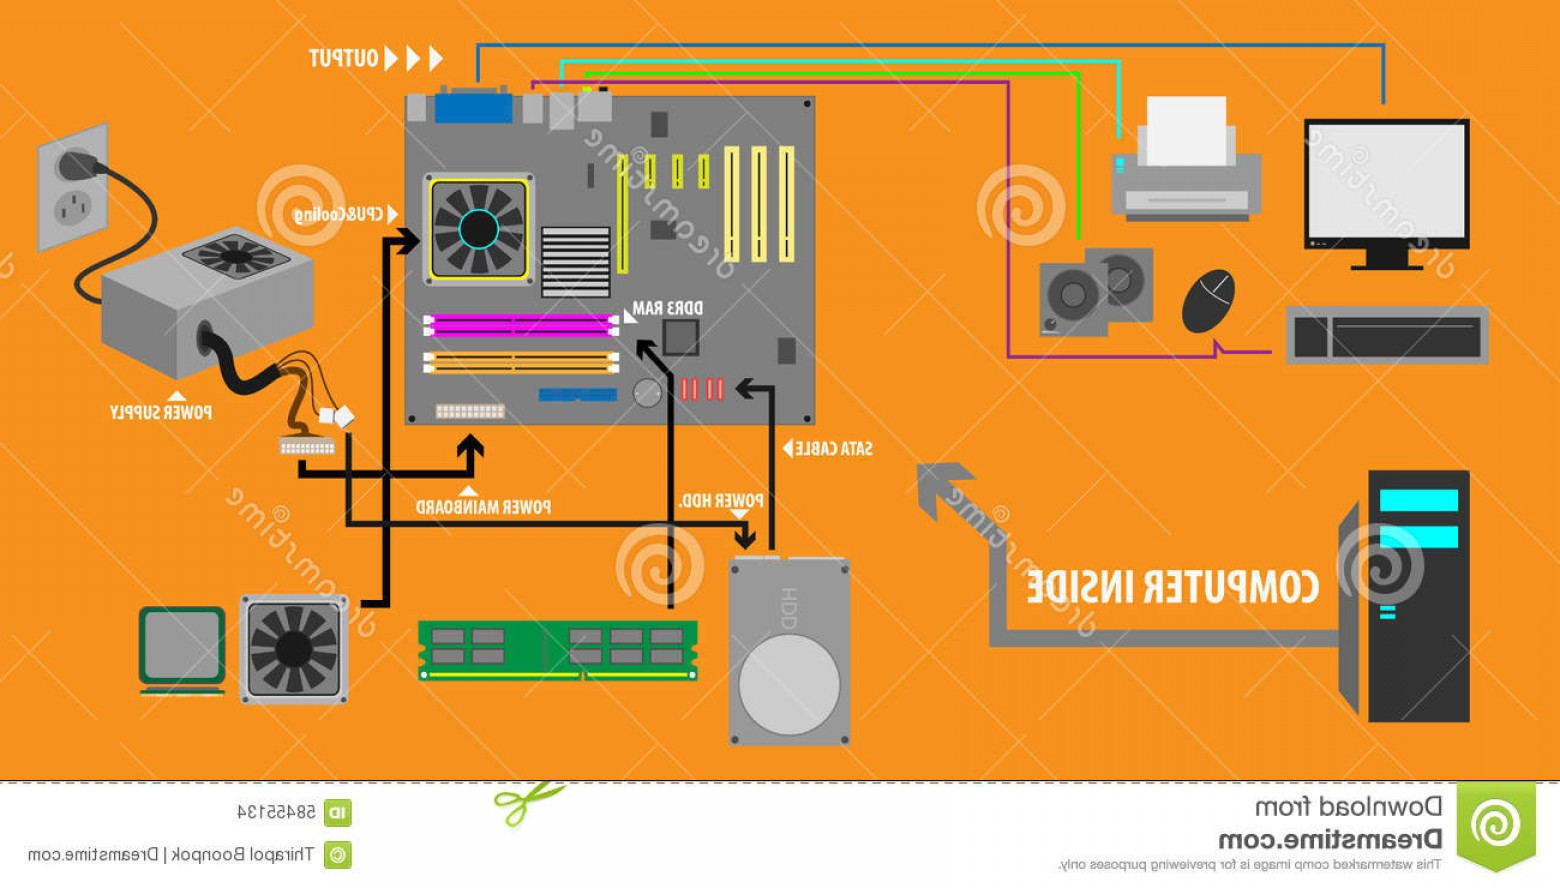 Vector Travel Cooler Parts: Stock Illustration Computer Parts Processing Vector Motherboard Power Graphic Connection Image